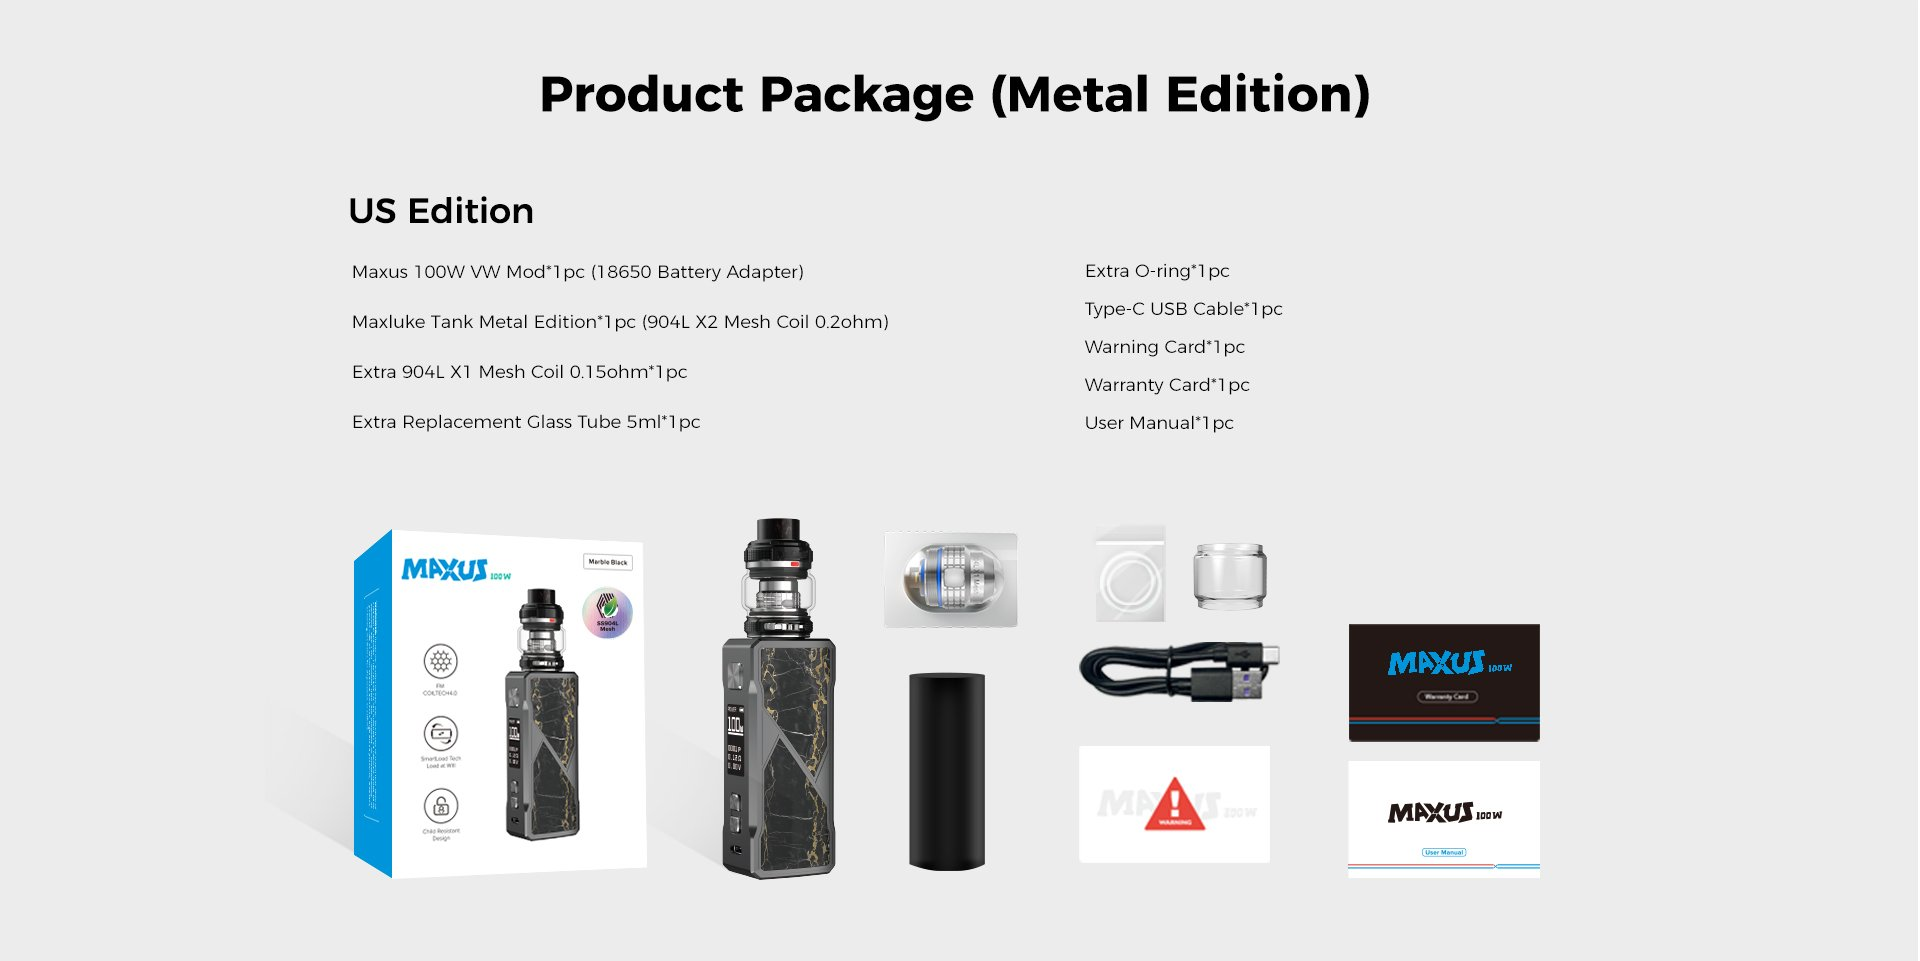 maxus-100w-product-package-metal-edition-us-edition